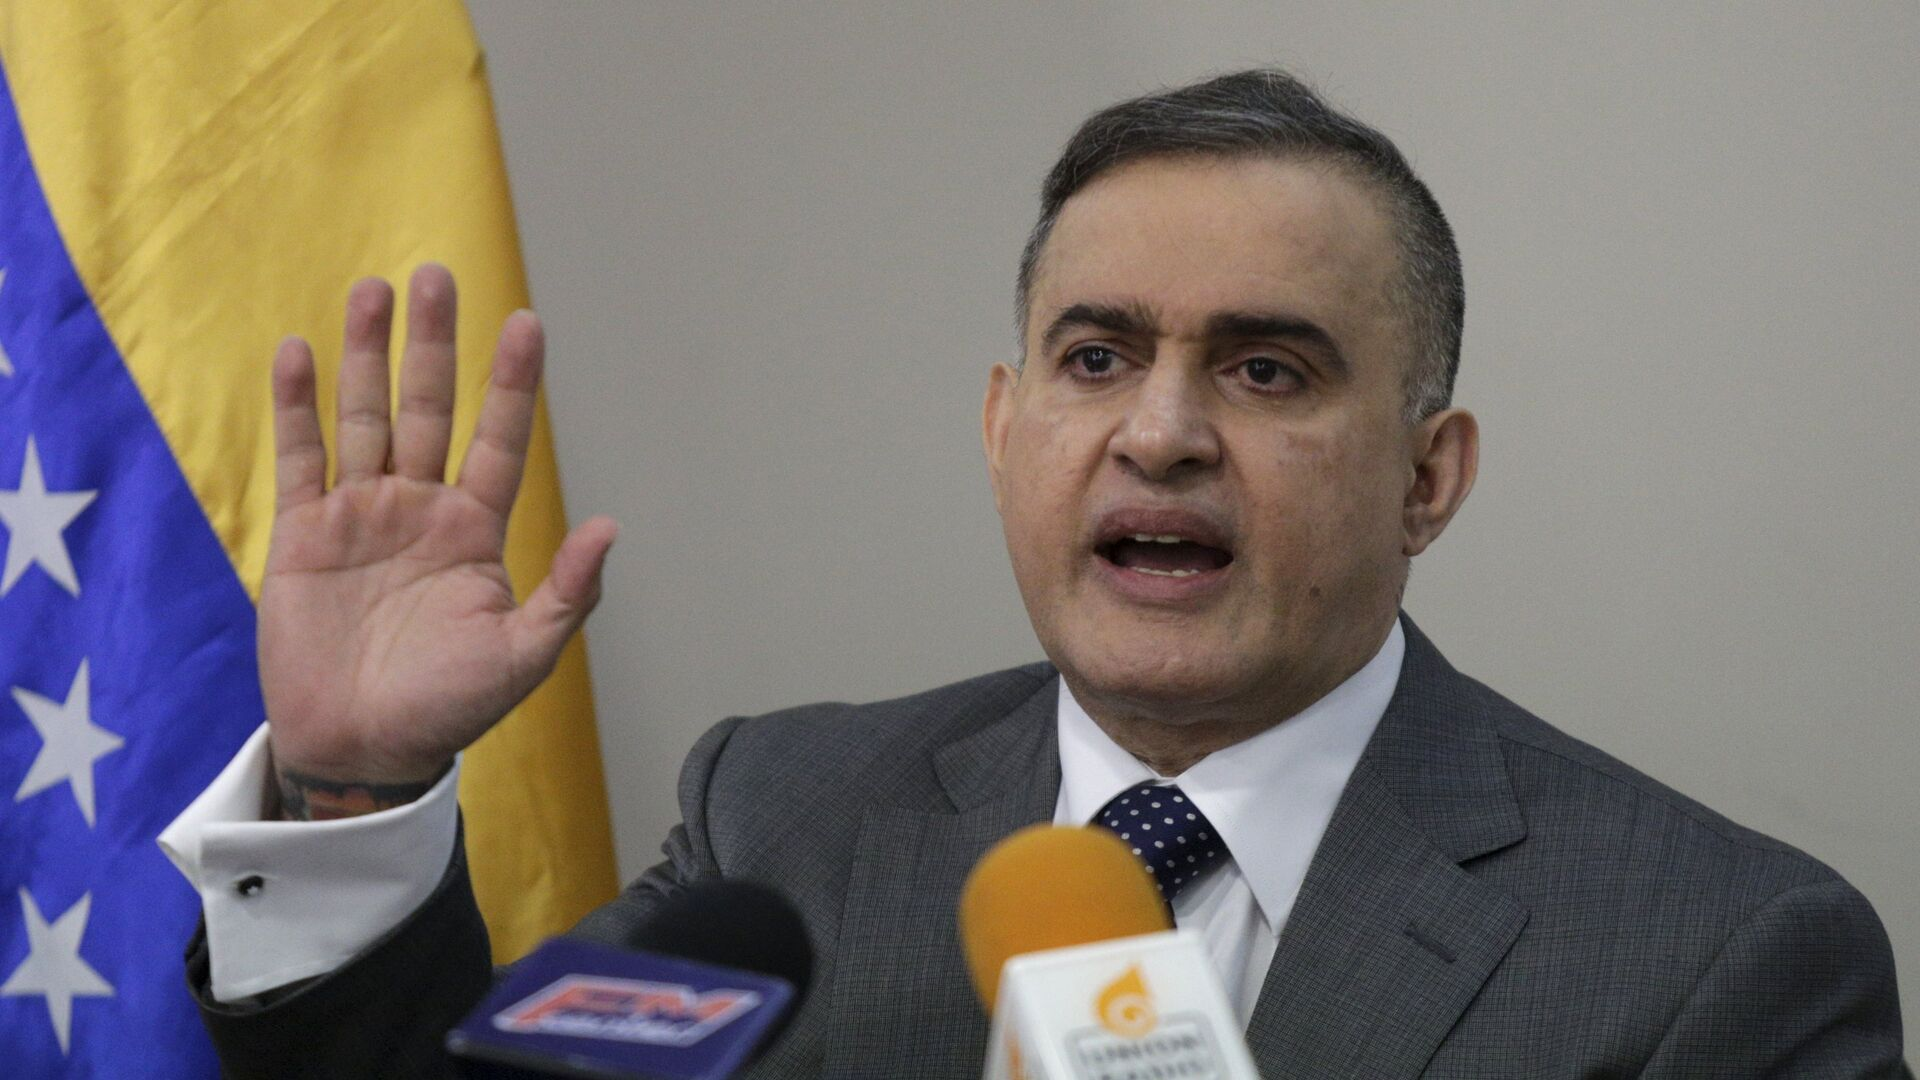 Venezuela's state ombudsman Tarek William Saab gestures as he talks to the media during a news conference in Caracas, March 9, 2016. - Sputnik Mundo, 1920, 26.03.2021